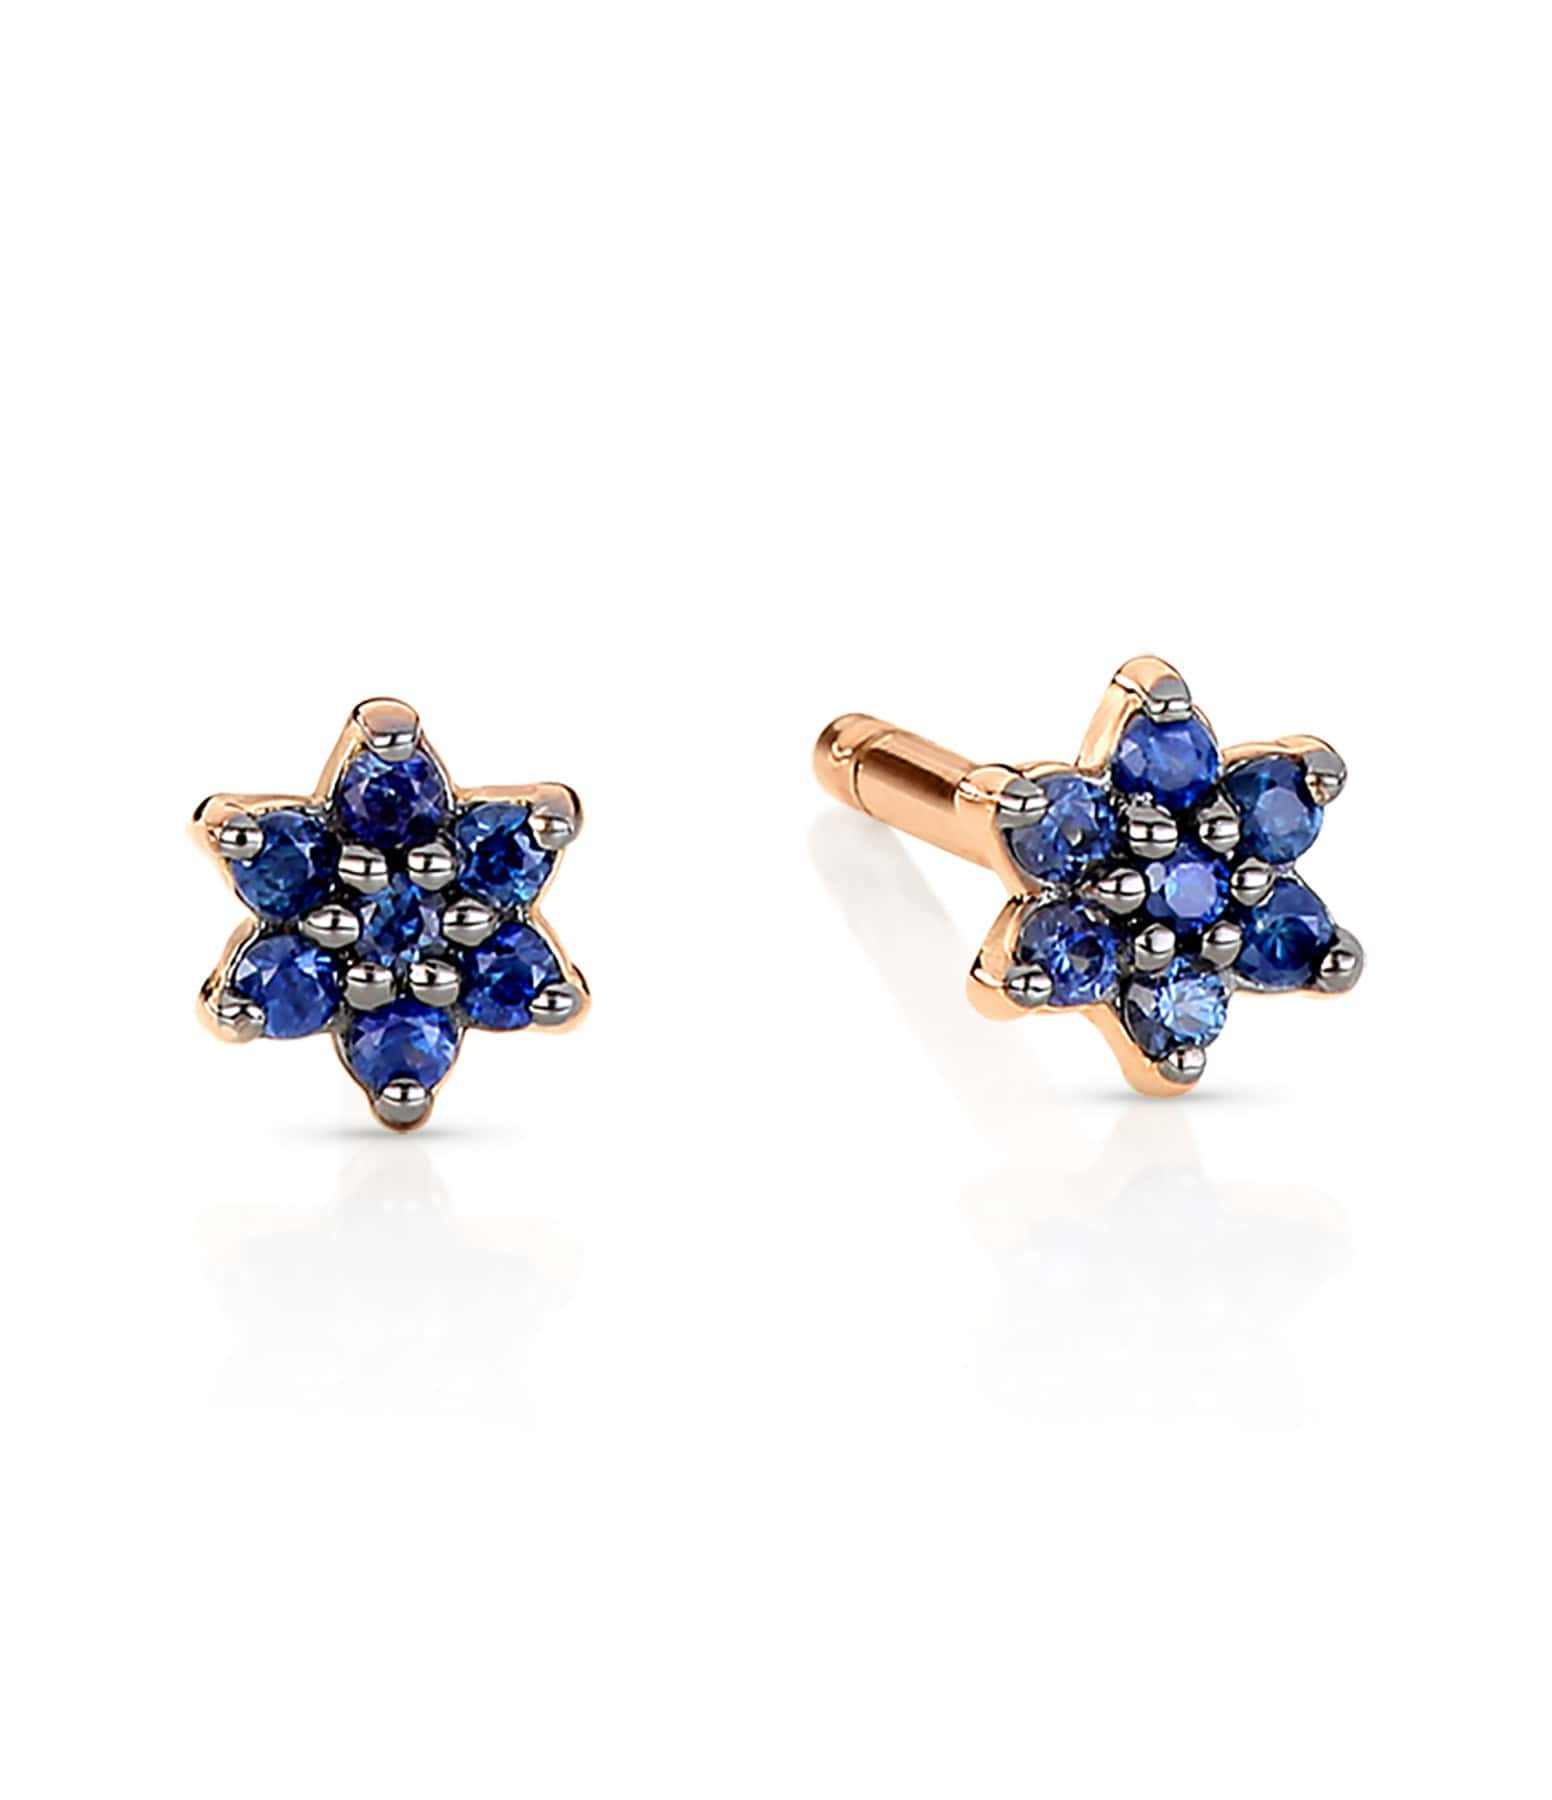 GINETTE NY - Boucles d'oreilles Mini Star Puces Saphirs Or Rose